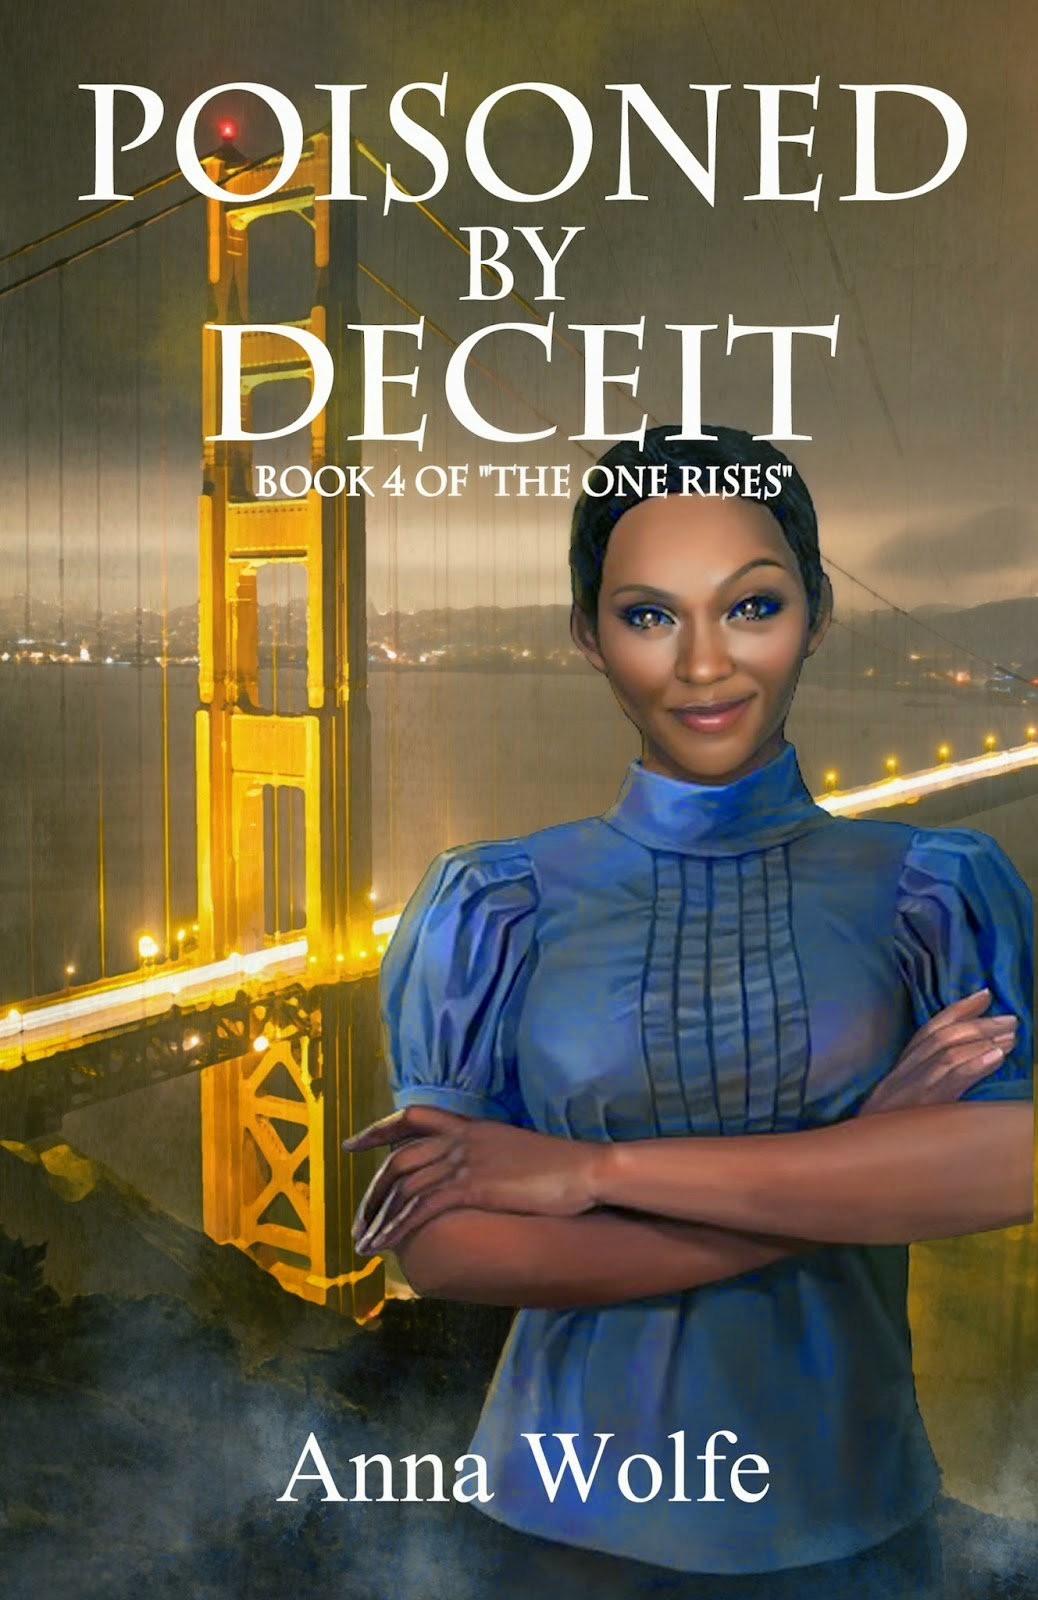 Poisoned By Deceit (the One Rises #4) By Anna Wolfe